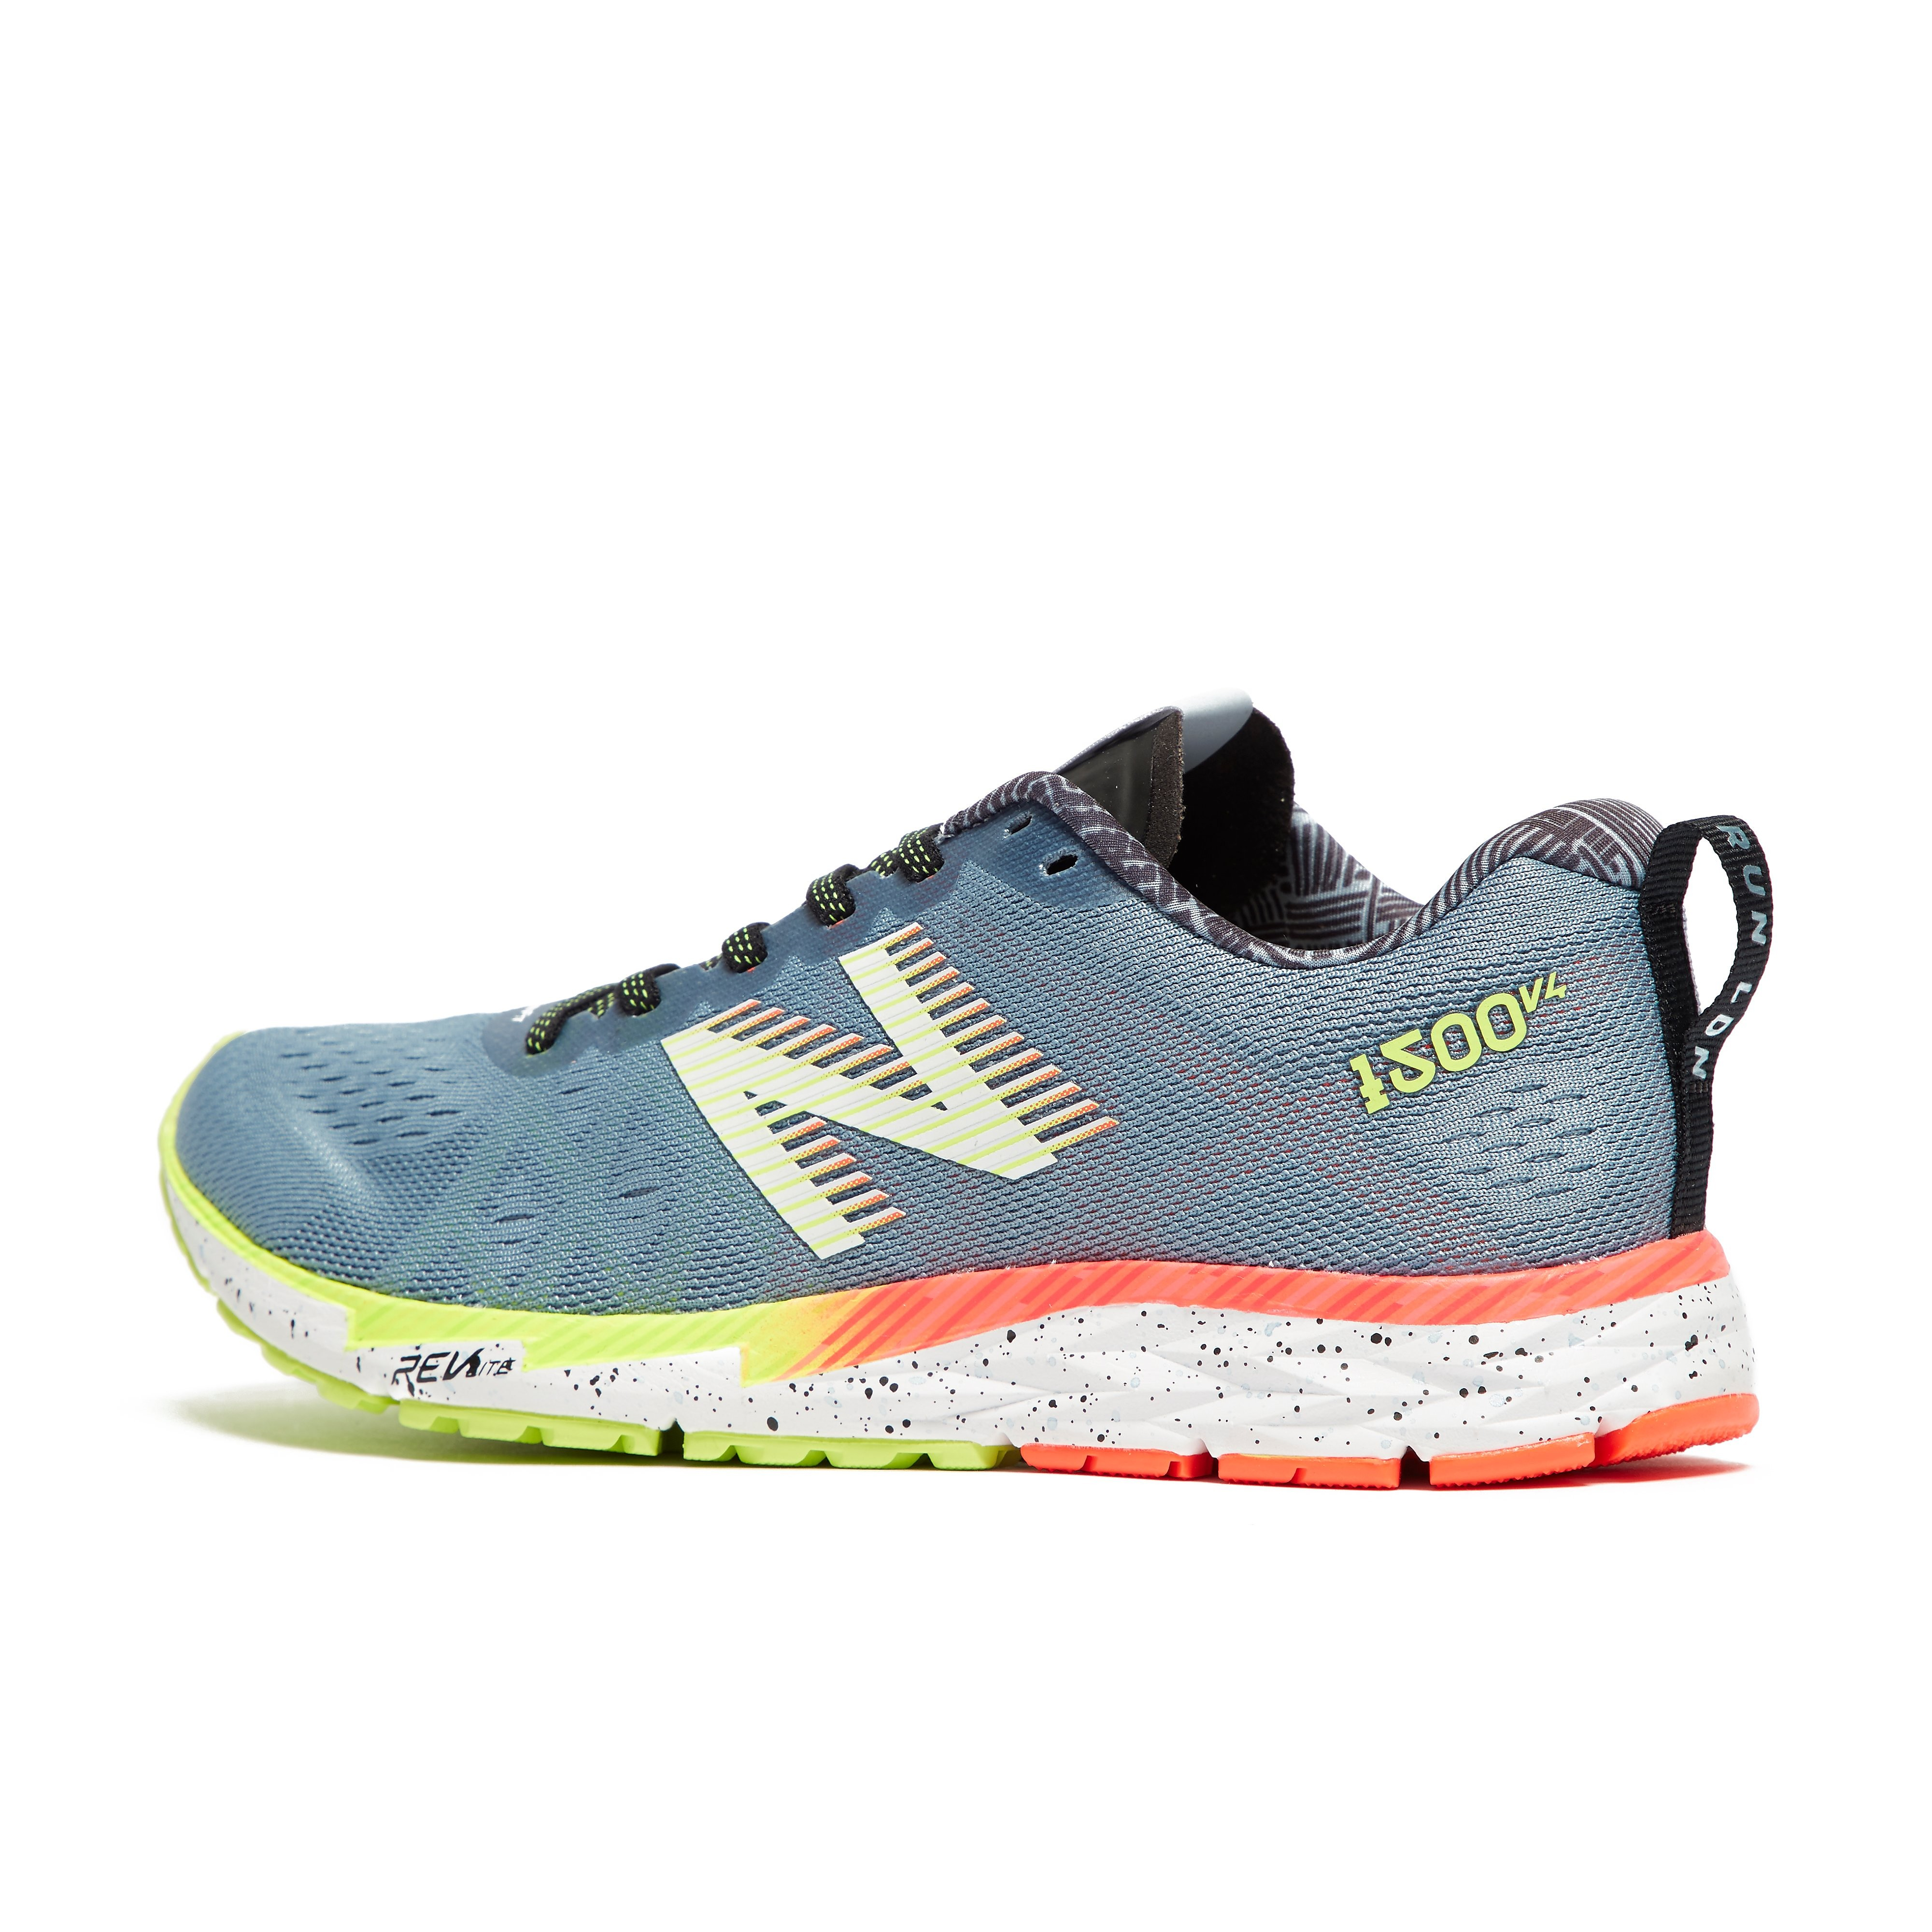 New Balance 1500V4 London Marathon Edition Women's Running Shoes